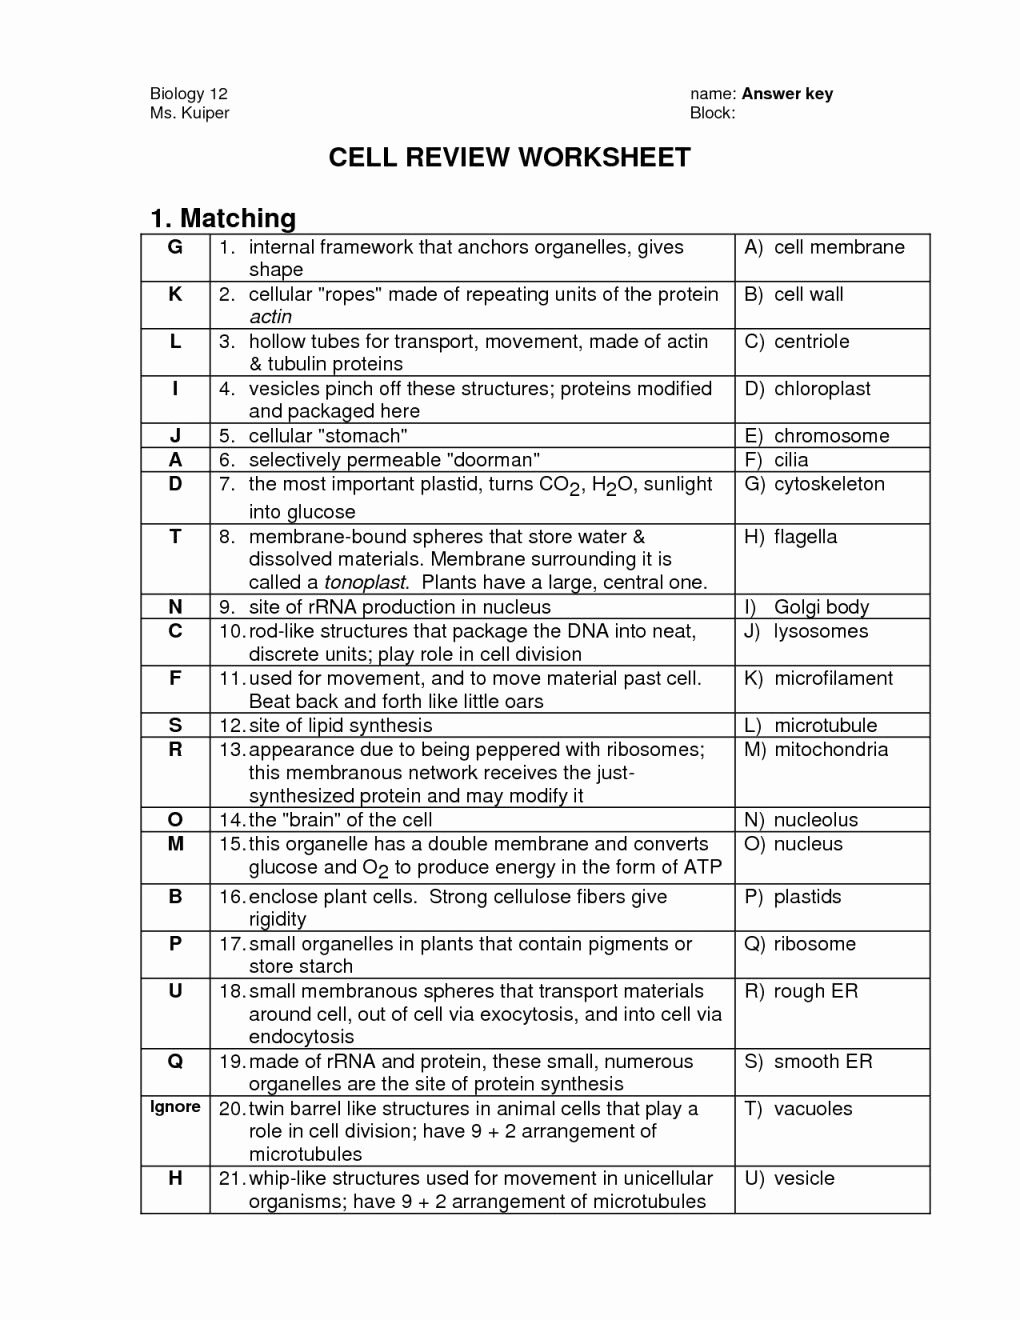 Cell organelles Worksheet Answers Inspirational Cell organelles Worksheet Answer Key